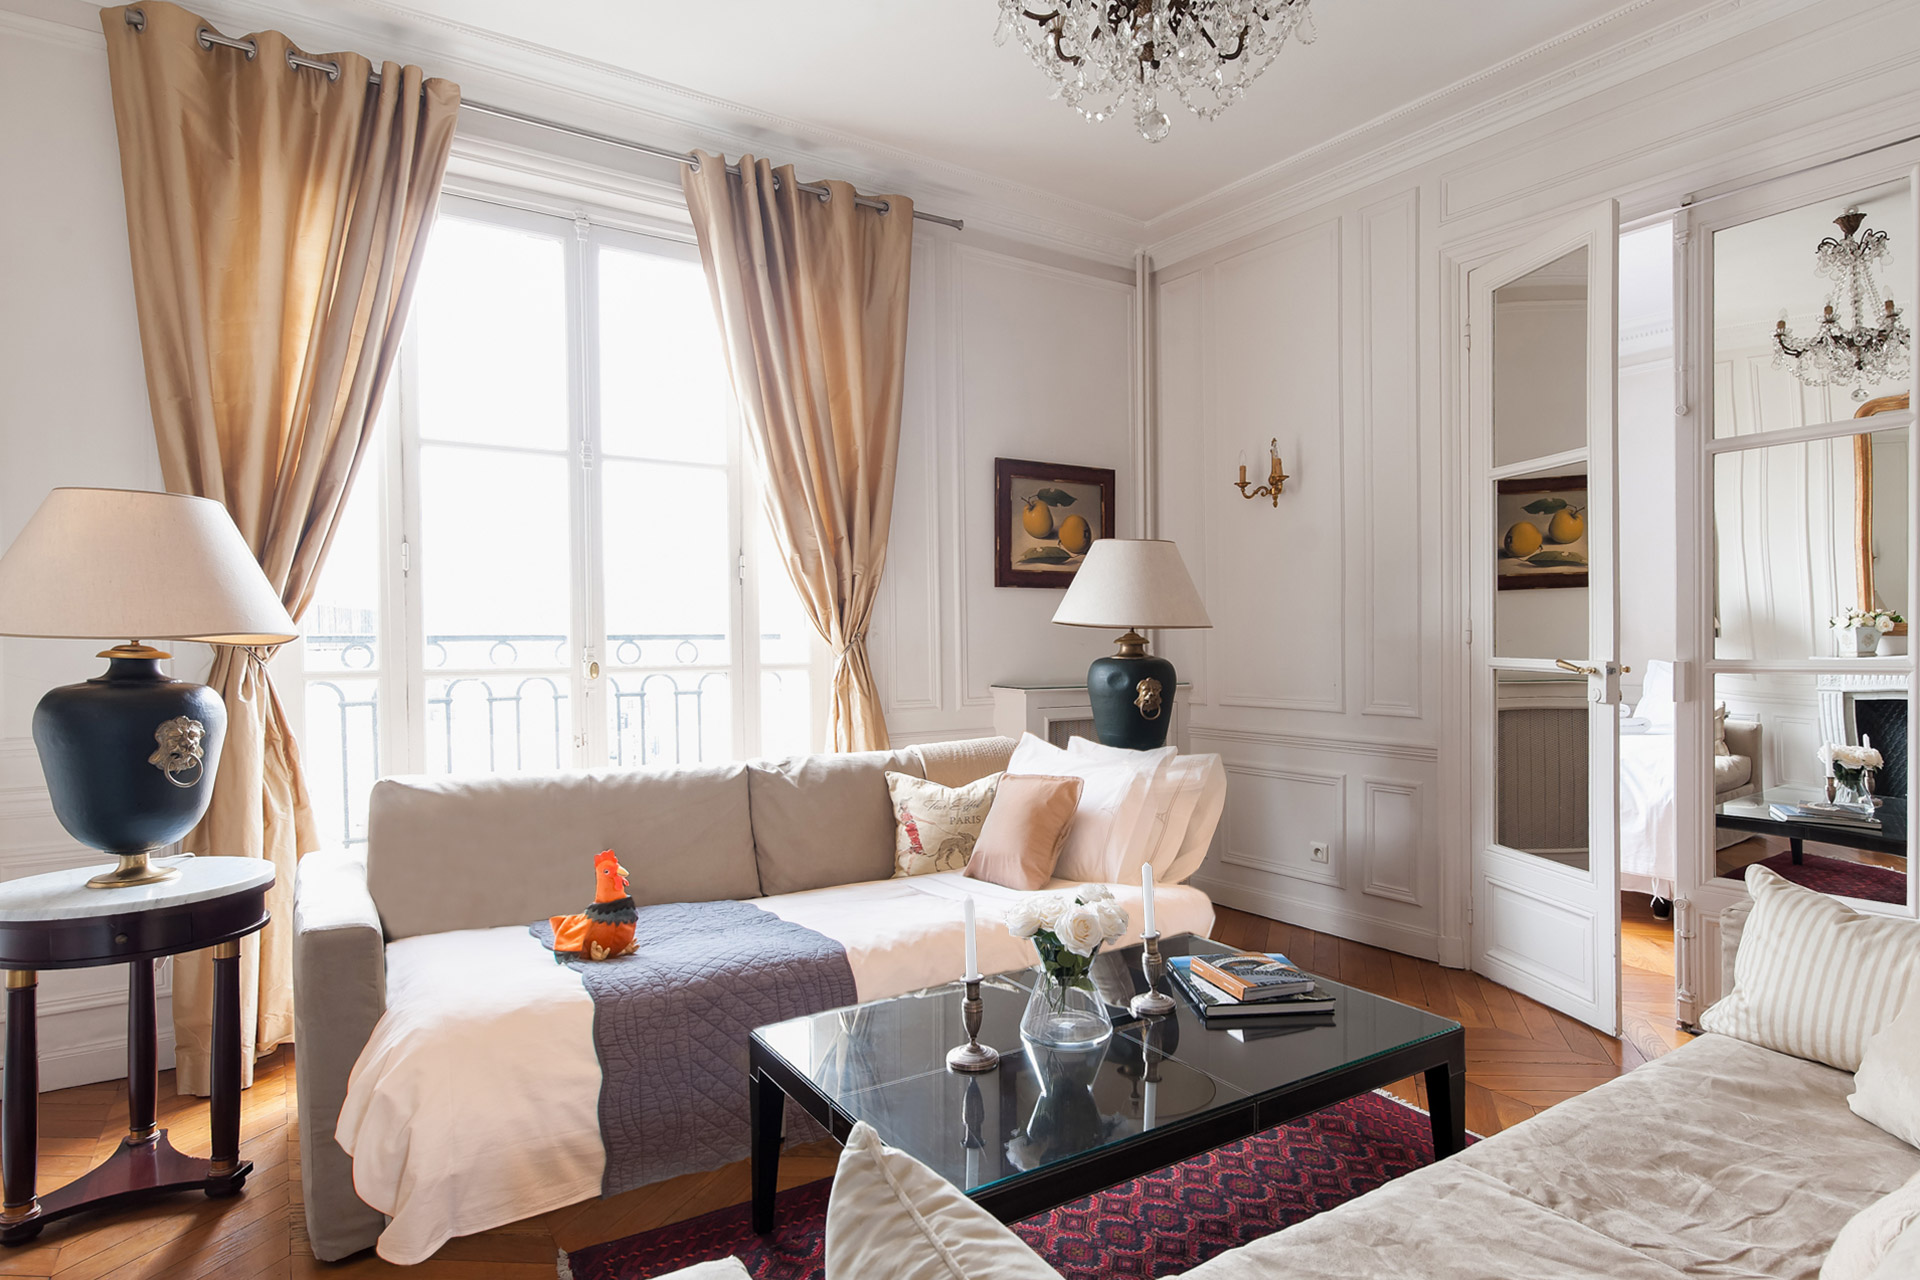 Living room with dual sofa beds in the Chateauneuf vacation rental offered by Paris Perfect